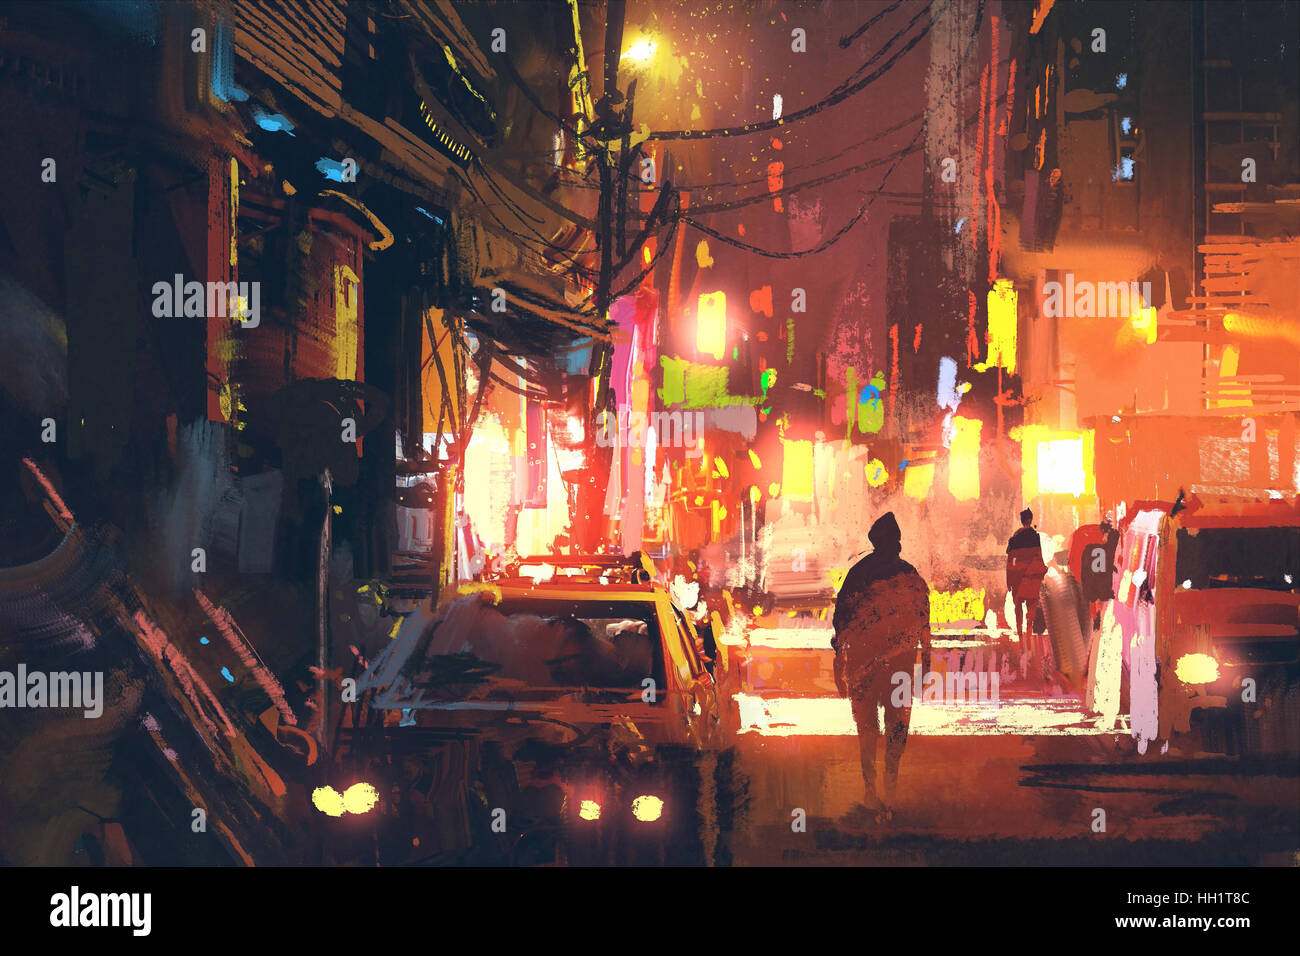 old street in the futuristic city at night with colorful light,sci-fi concept,illustration painting - Stock Image